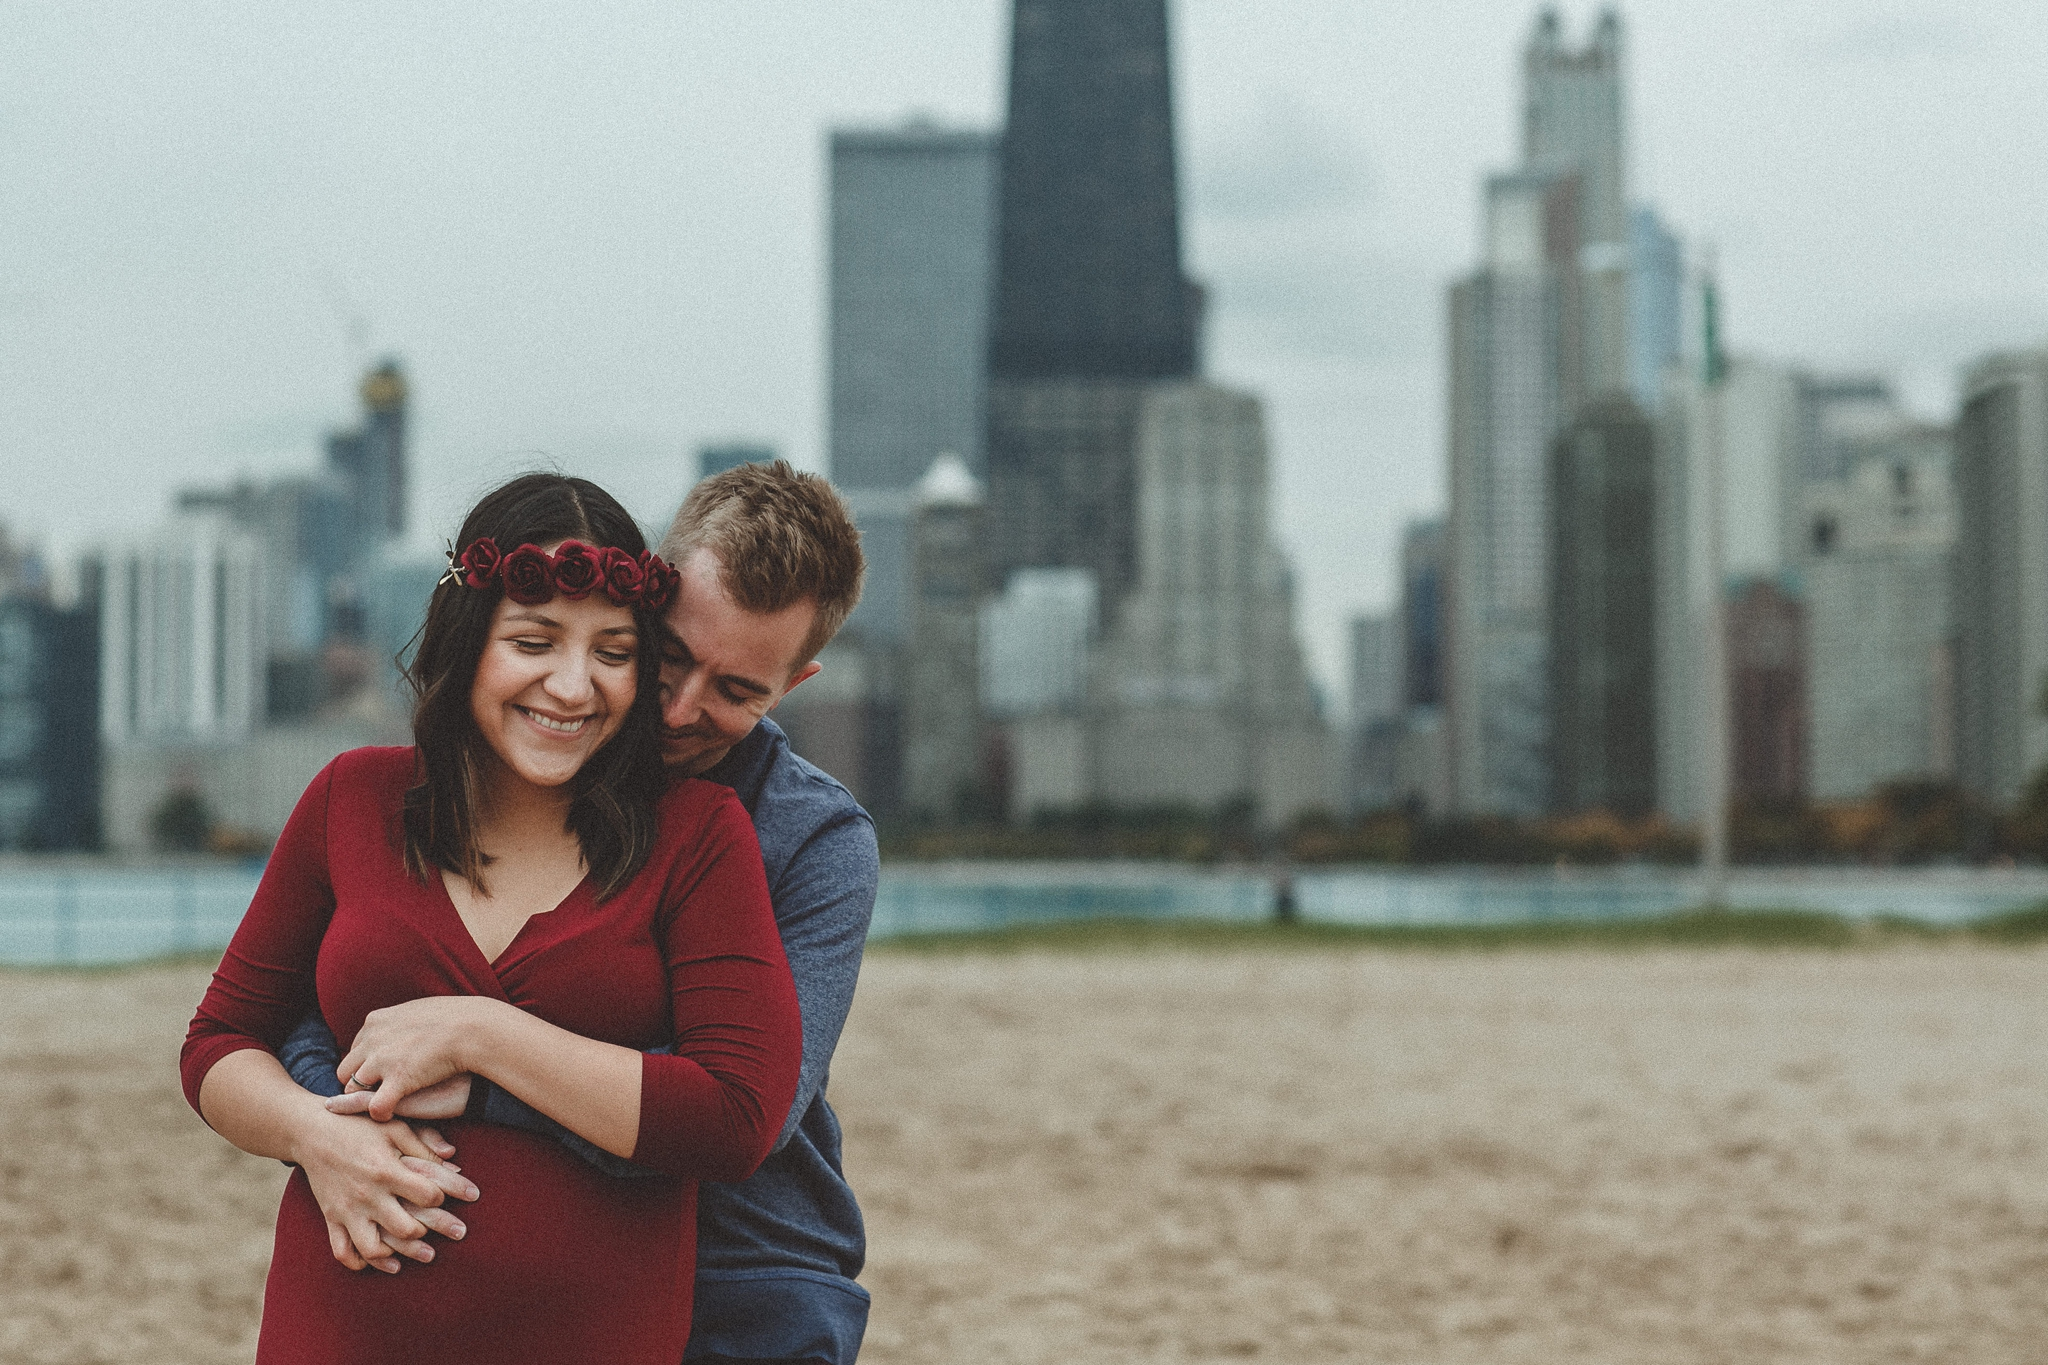 chicago_lincoln_park_family_maternity_photograper_0029.jpg